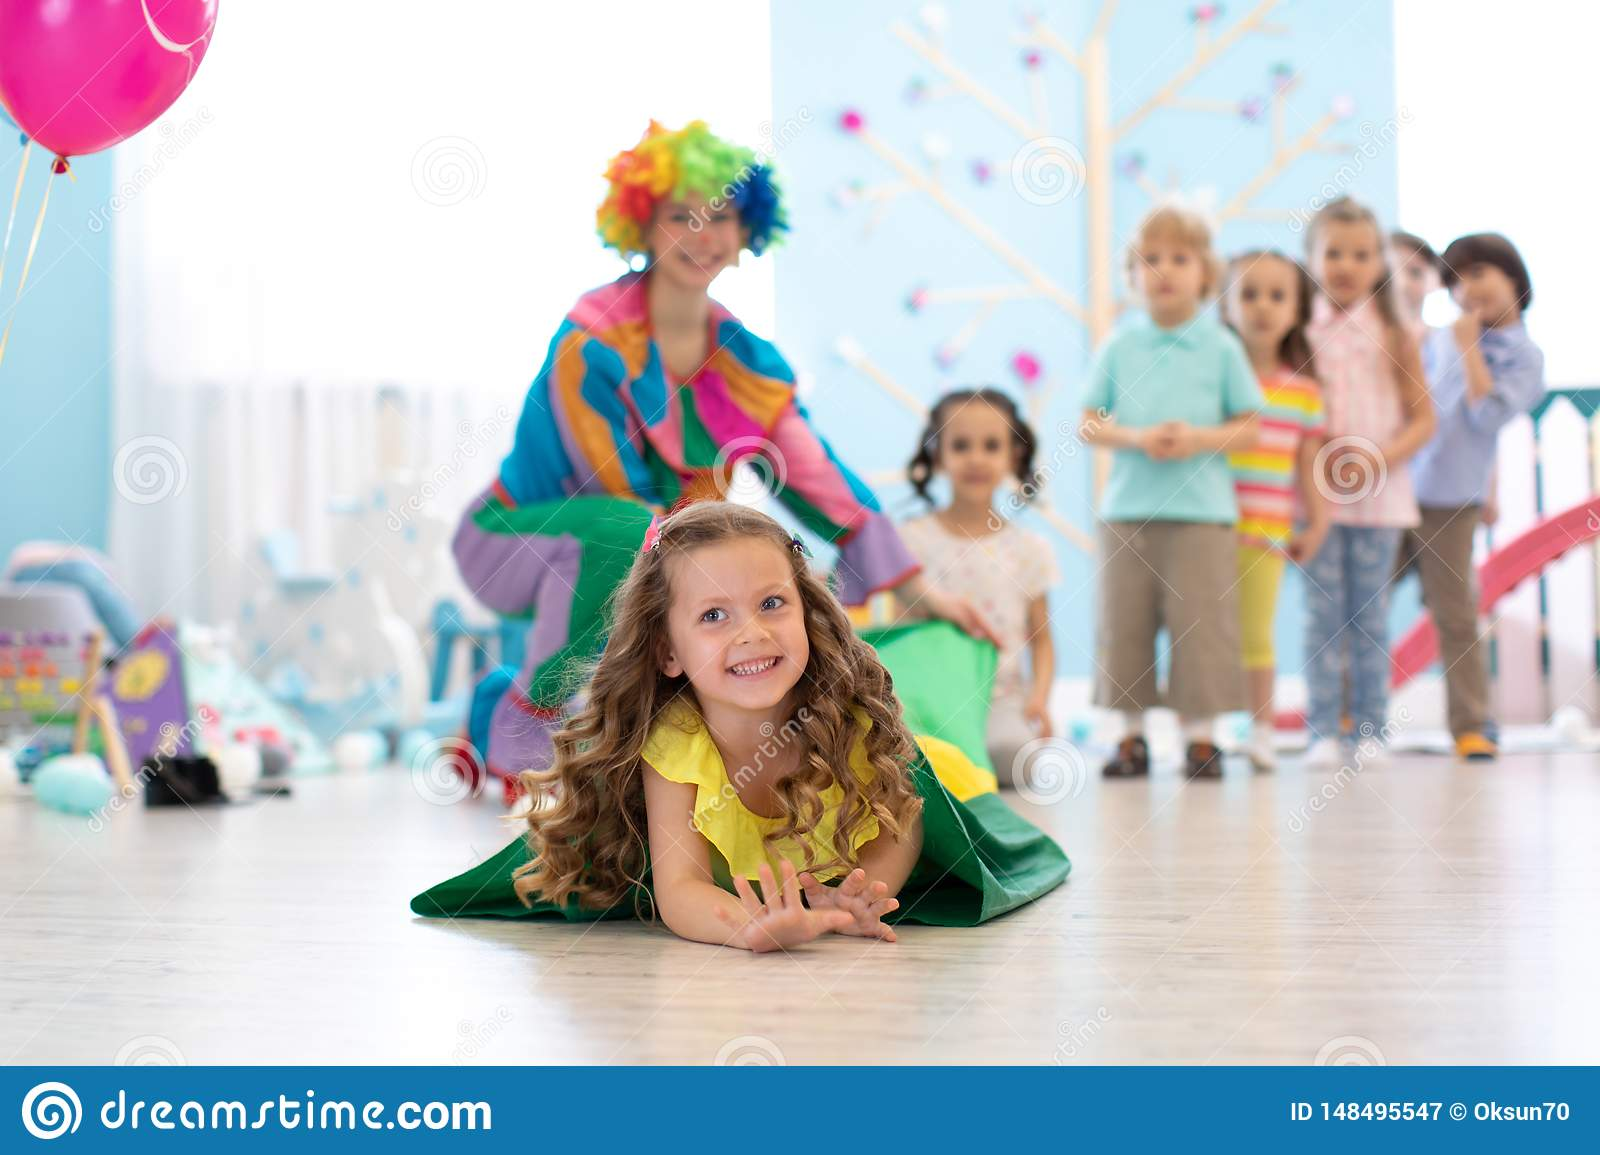 Happy children playing in childrens playroom for birthday party or entertainment centre. Kids amusement park and play